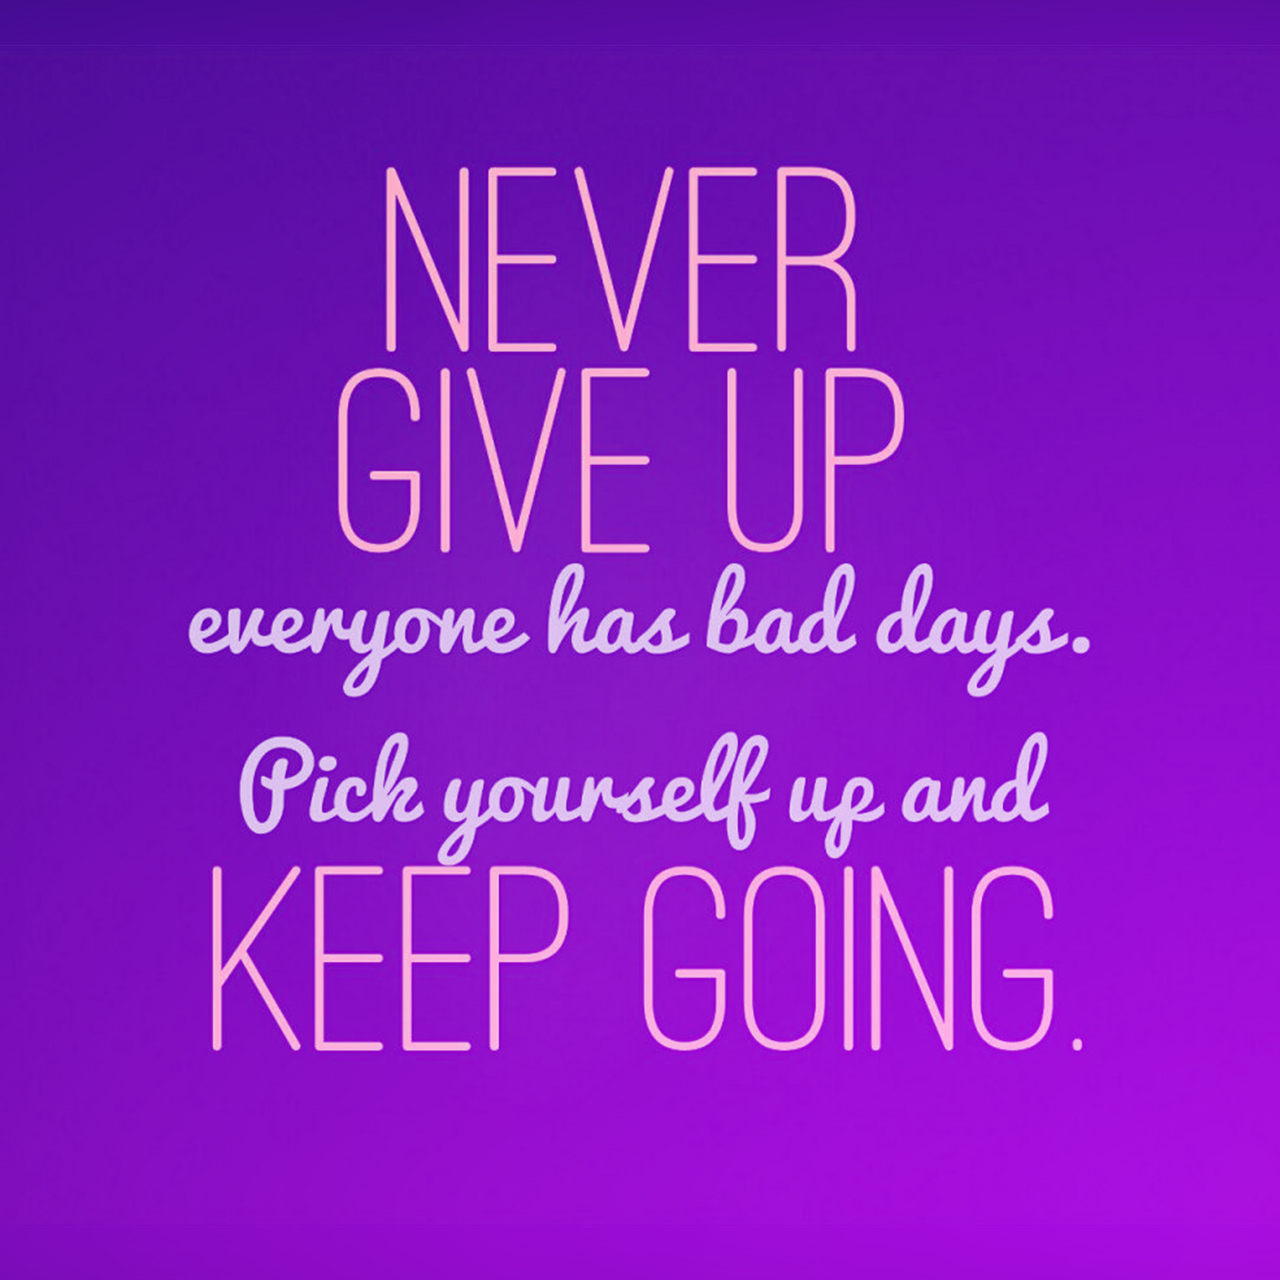 Never give up everyone has bad days. Pick yourself up and keep going.